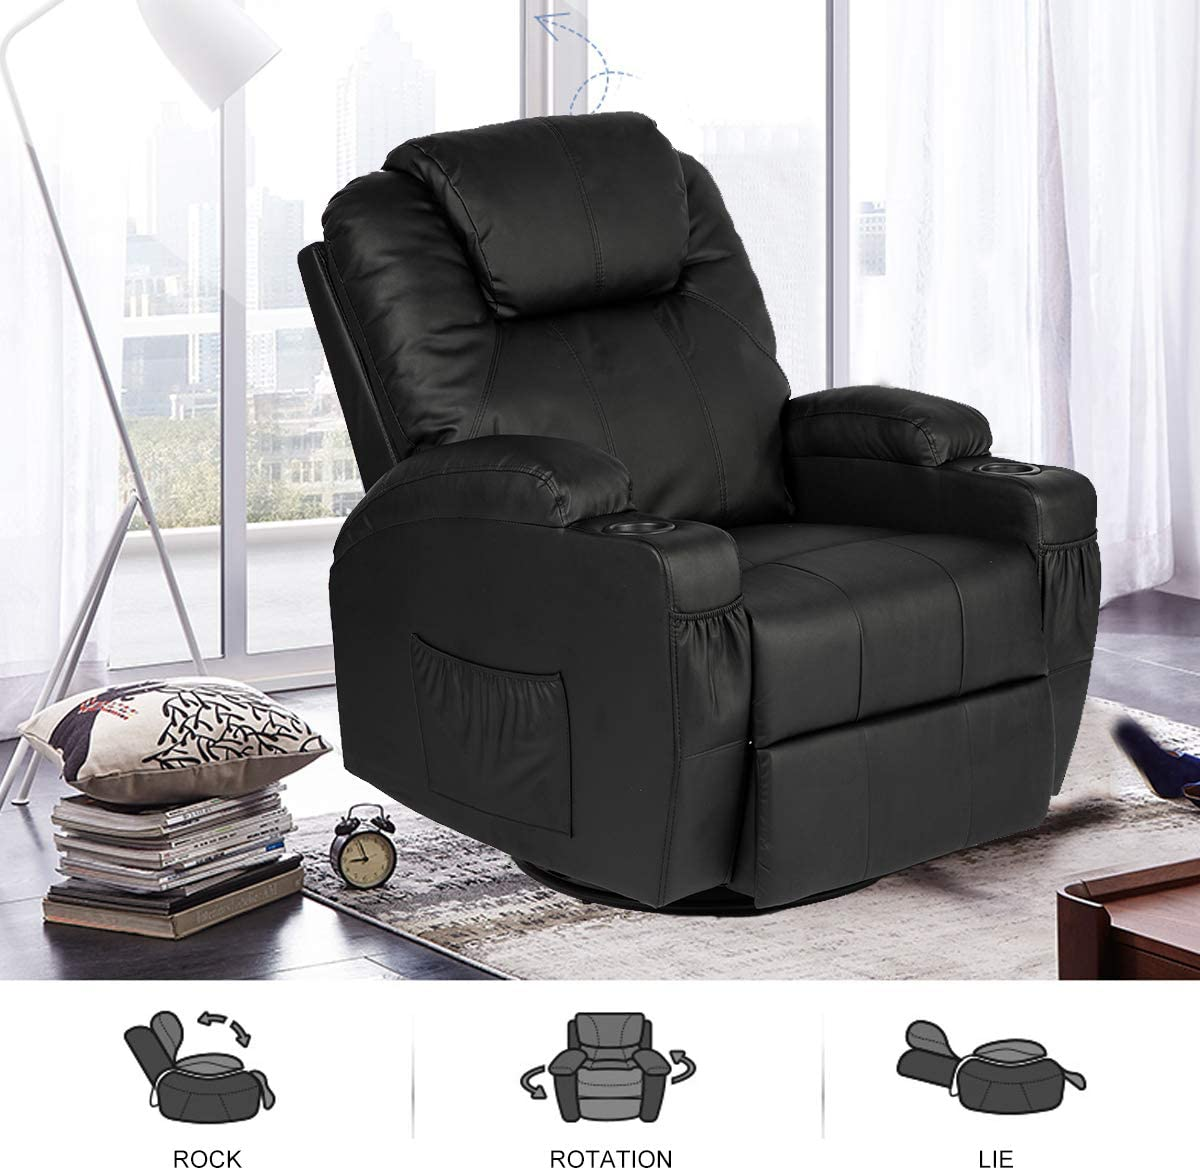 BaoChen Massage Recliner Chair Heated PU Leather Ergonomic Lounge Control 360 Degree Swivel Black